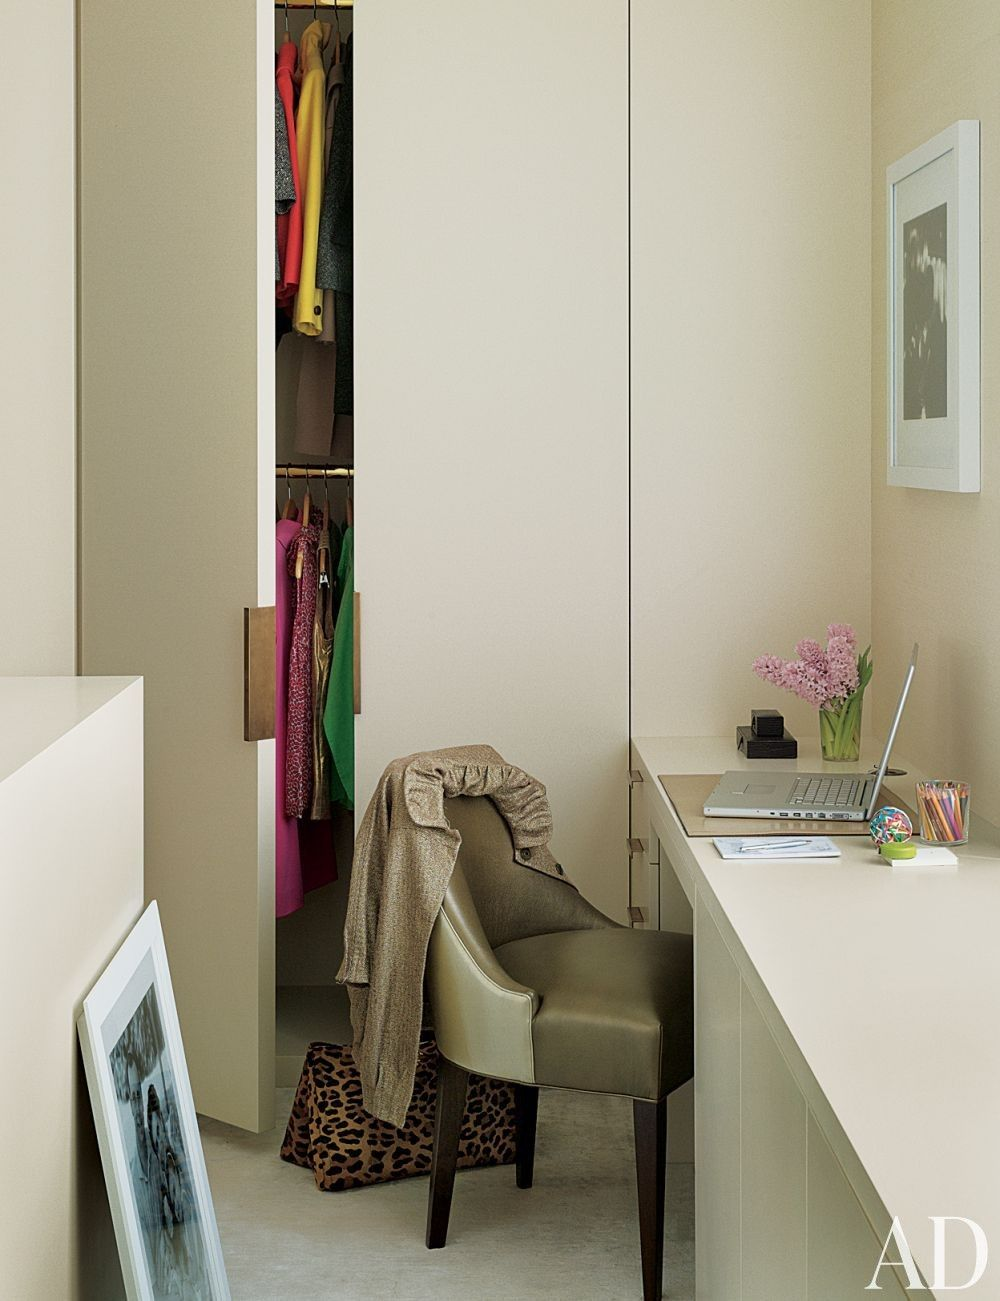 Contemporary Dressing Room/Closet by MR Architecture + Decor in New York, New York